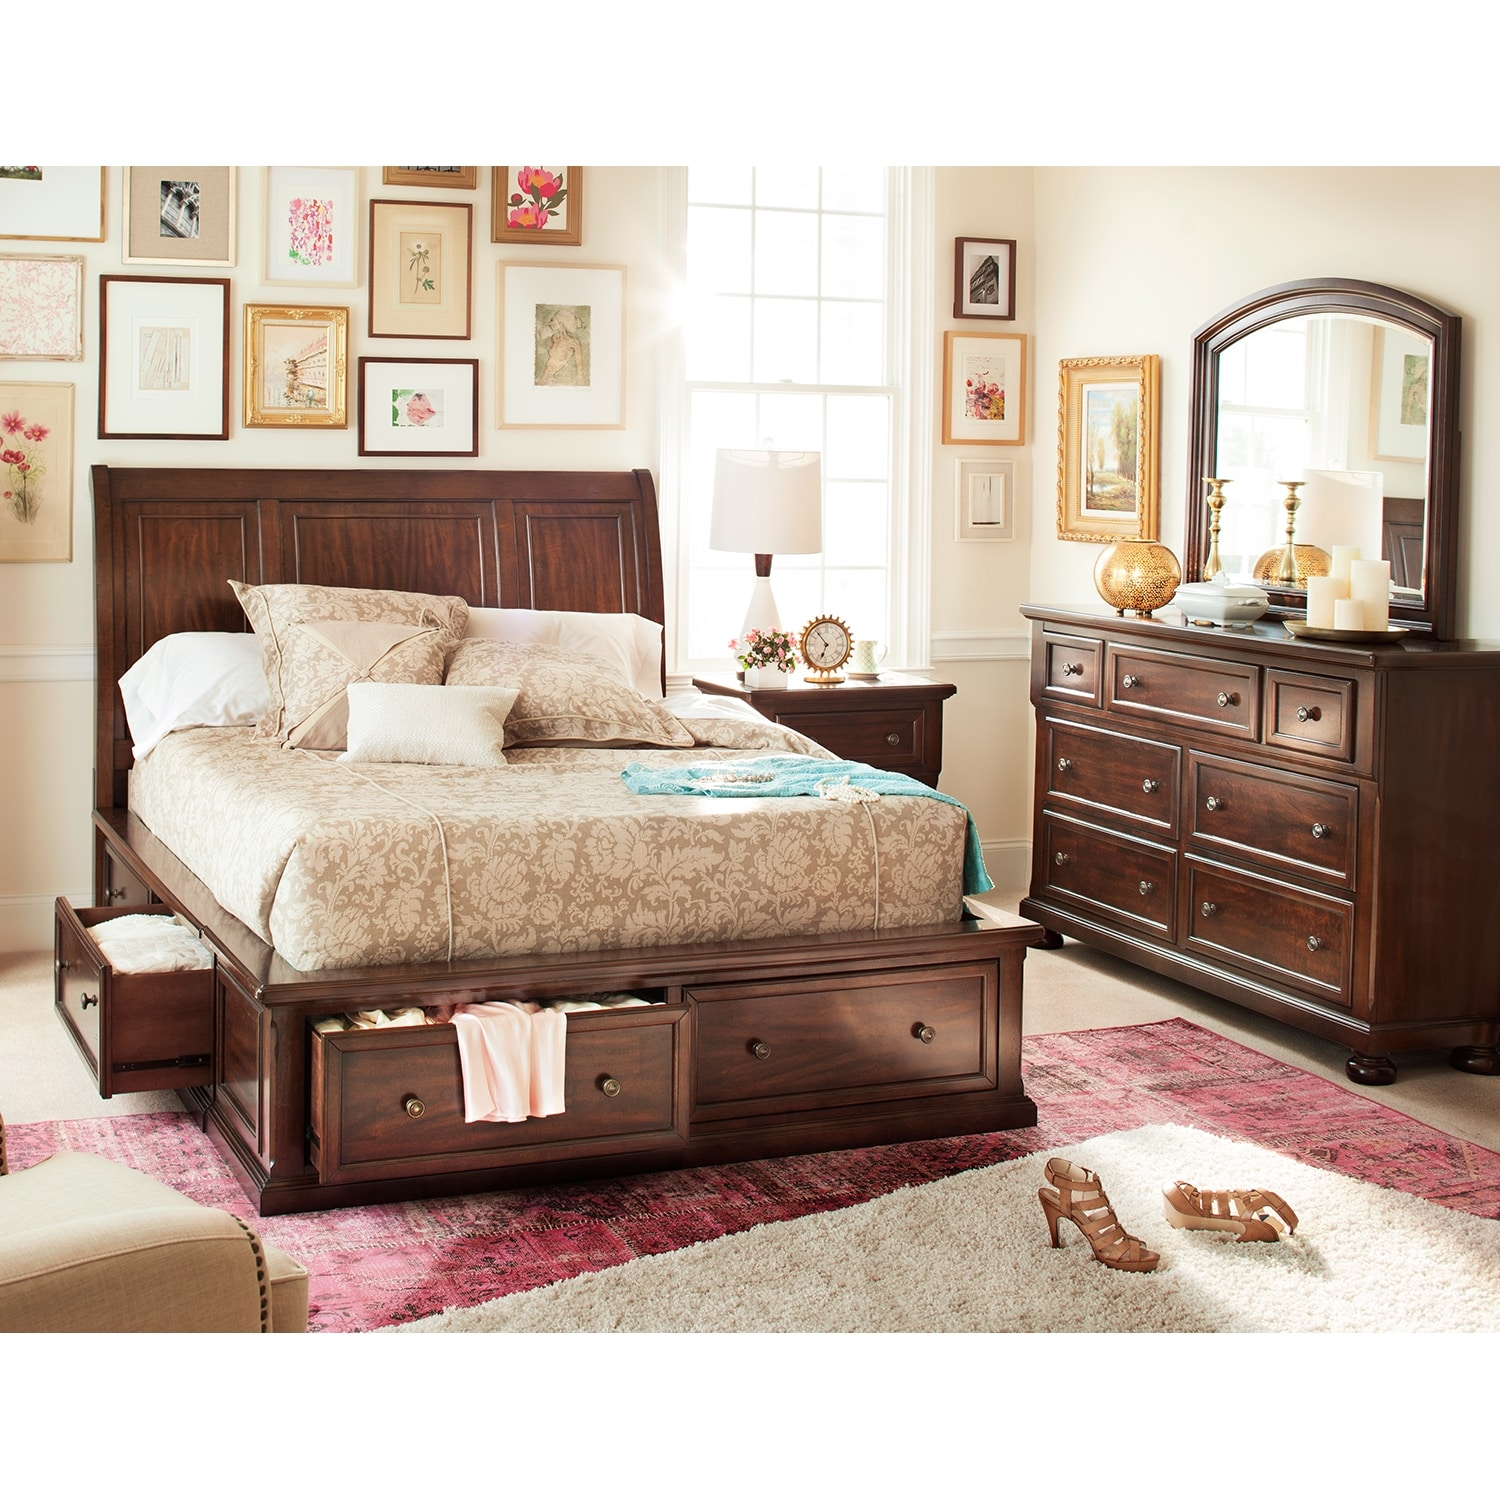 The Hanover Storage Bedroom Collection Cherry Value City - Signature bedroom furniture sale